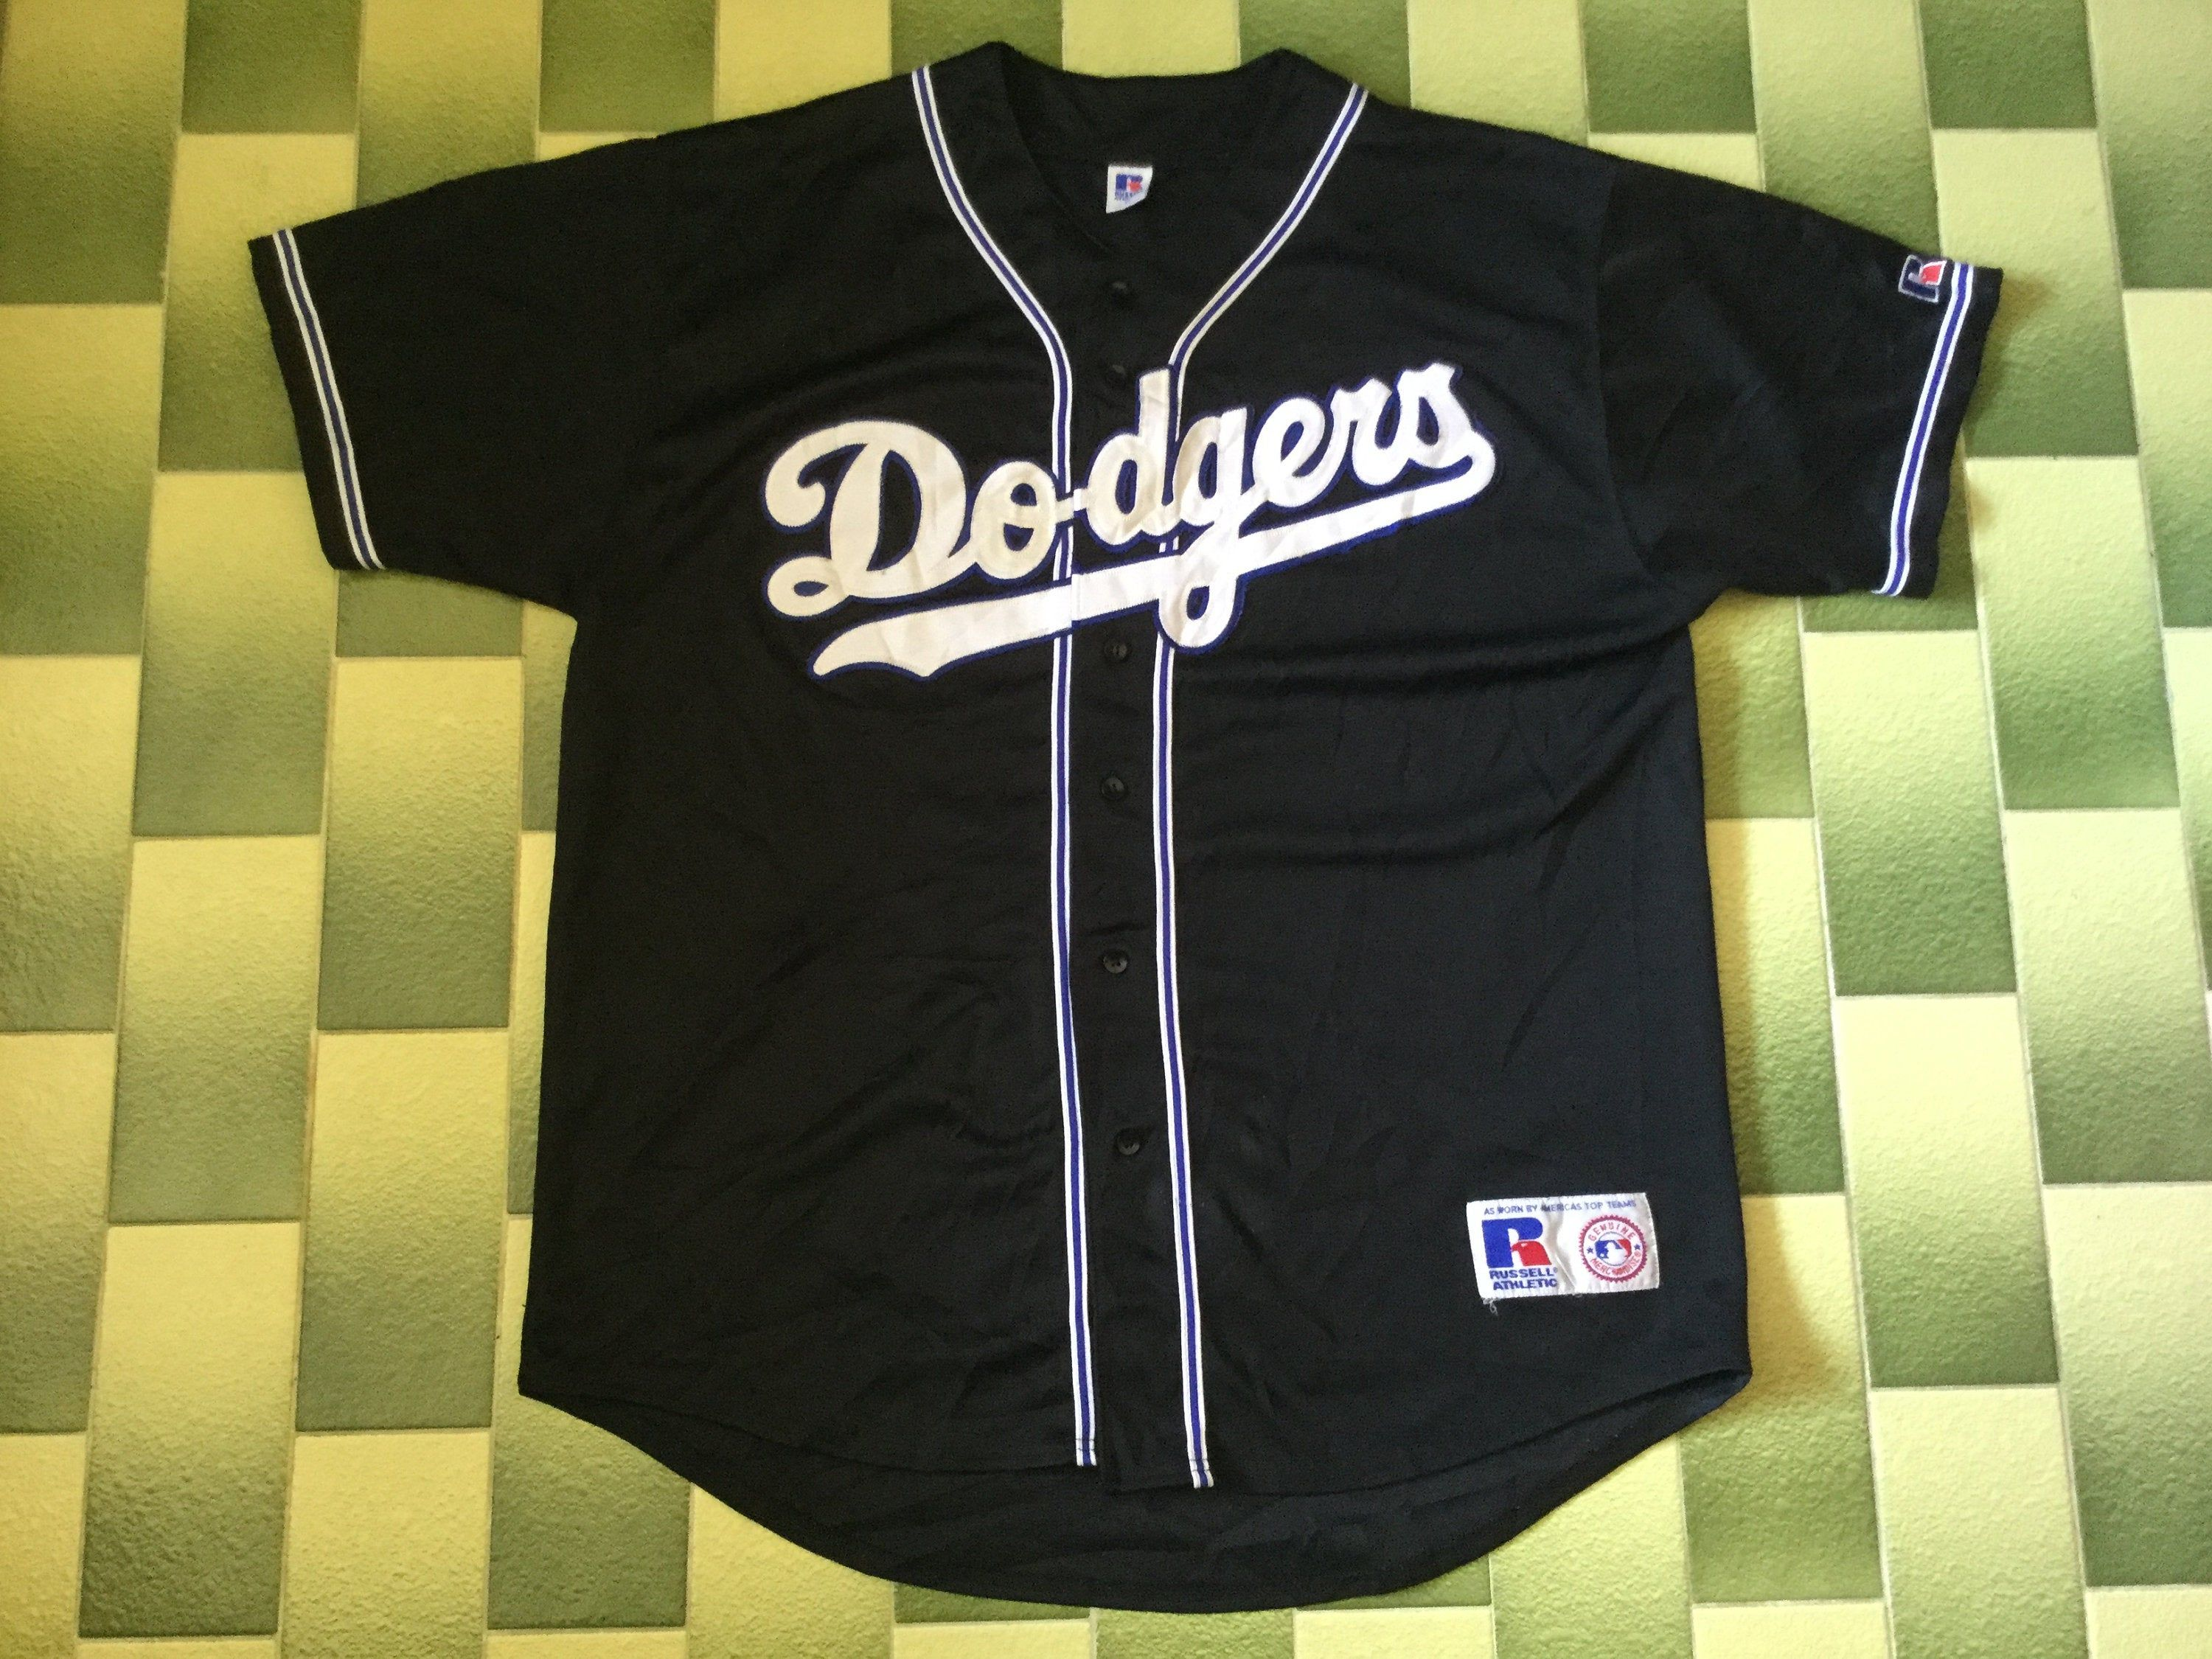 Vintage Los Angeles Dodgers Baseball Jersey Mlb Size Xl By Russell Athletic In 2020 Dodgers Baseball Los Angeles Dodgers Baseball Russell Athletic